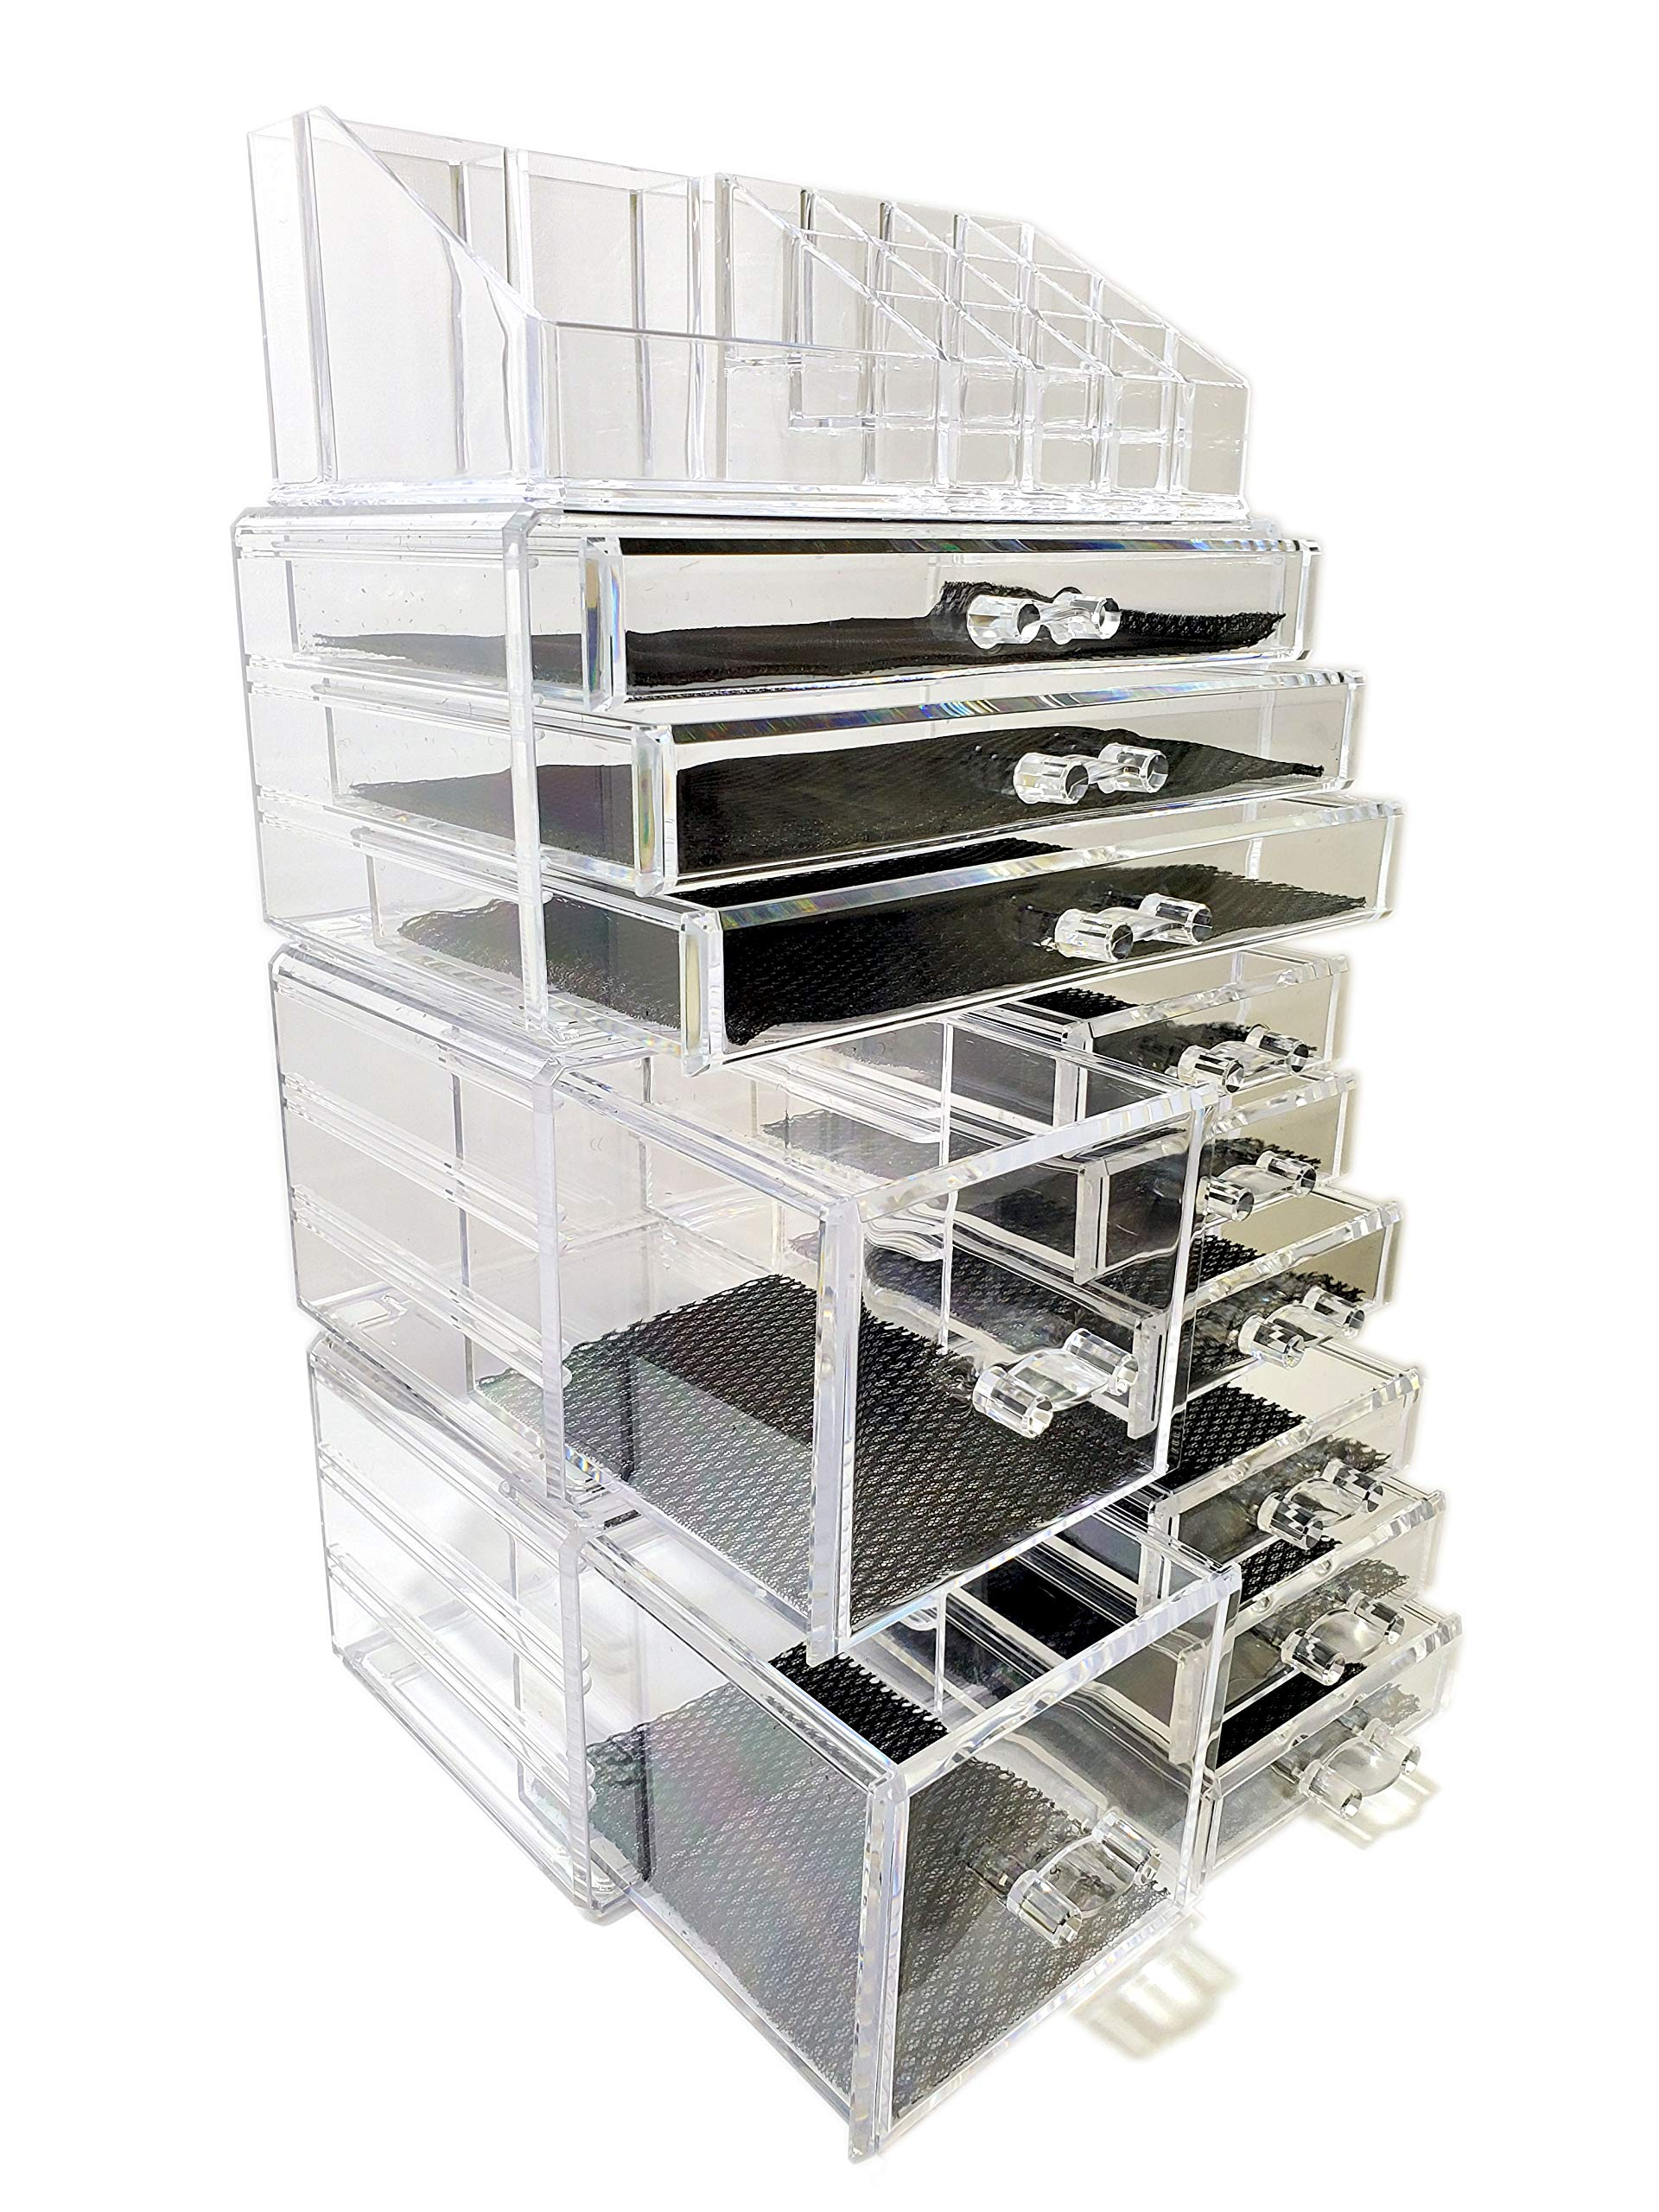 Townhouse Design Acrylic Jewelry & Cosmetic Storage Display Boxes,Makeup Organizer,Stackable and Detacable, 4 Pieces Set